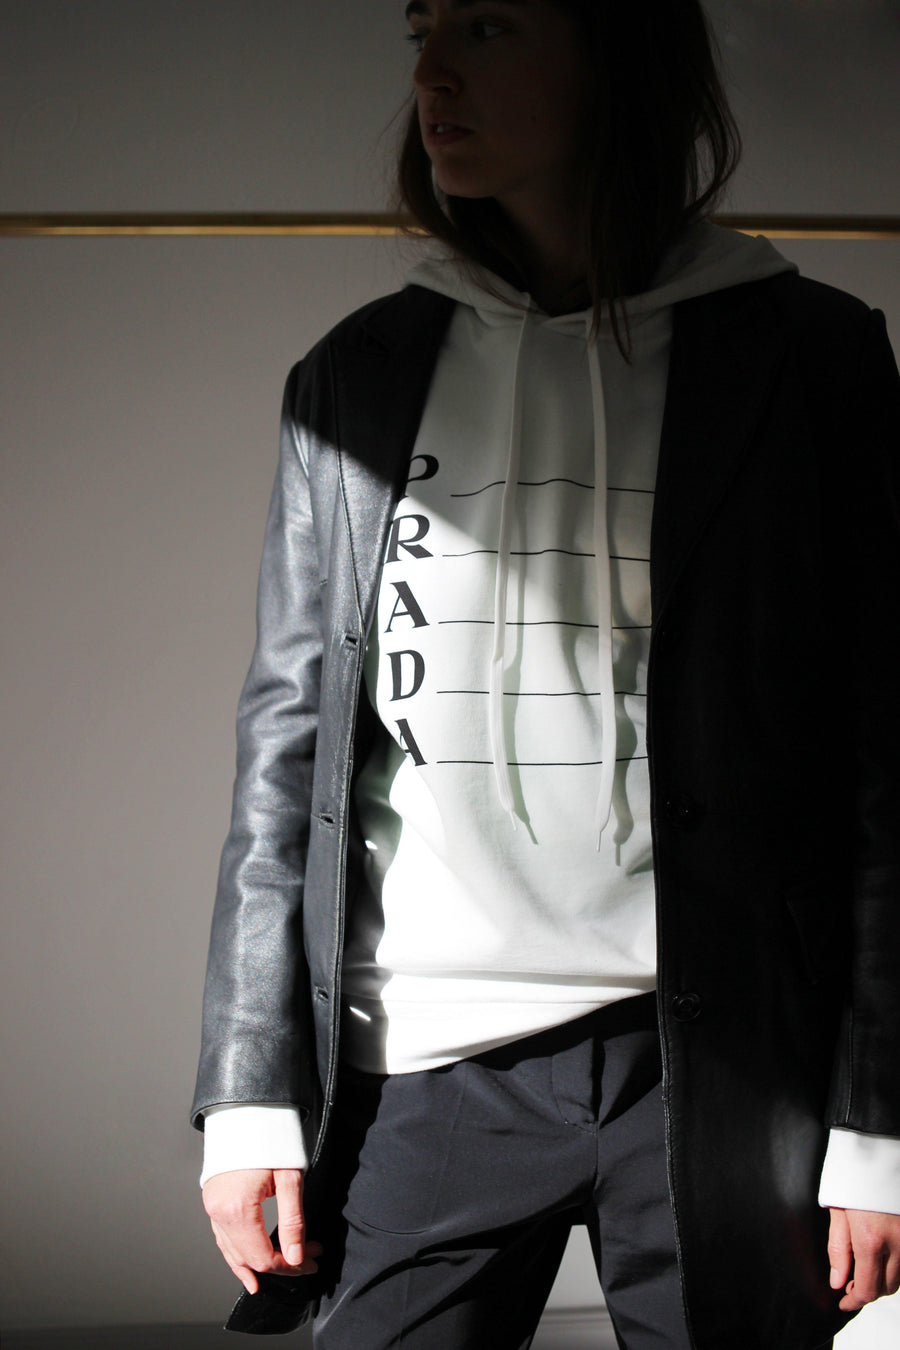 PRADA Hooded Sweatshirt